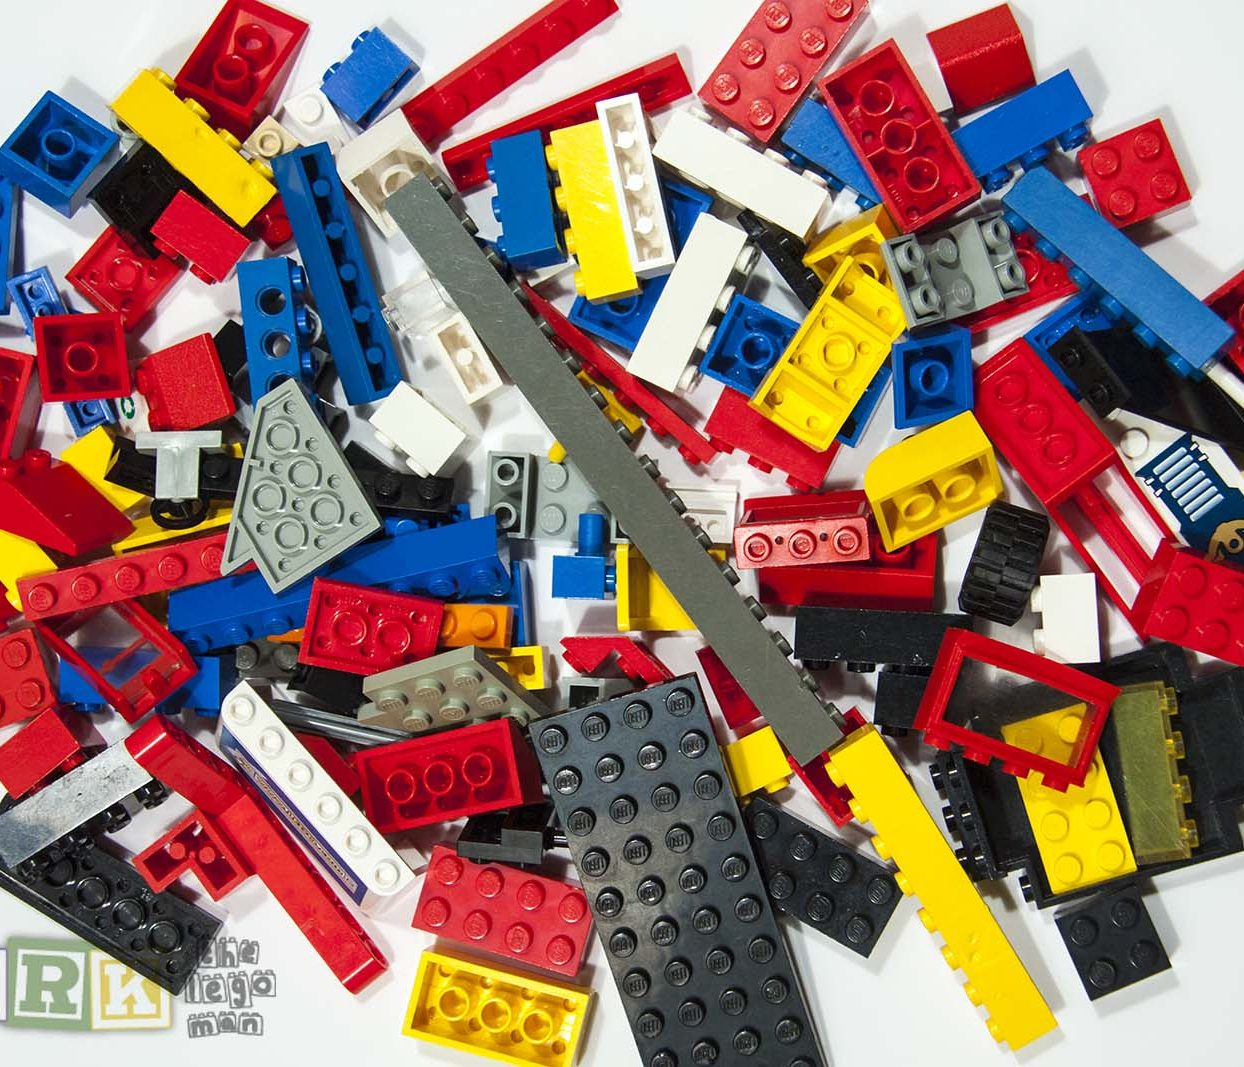 Used Lego Mixed Bricks Plates Parts 250 grams For Sale Worldwide